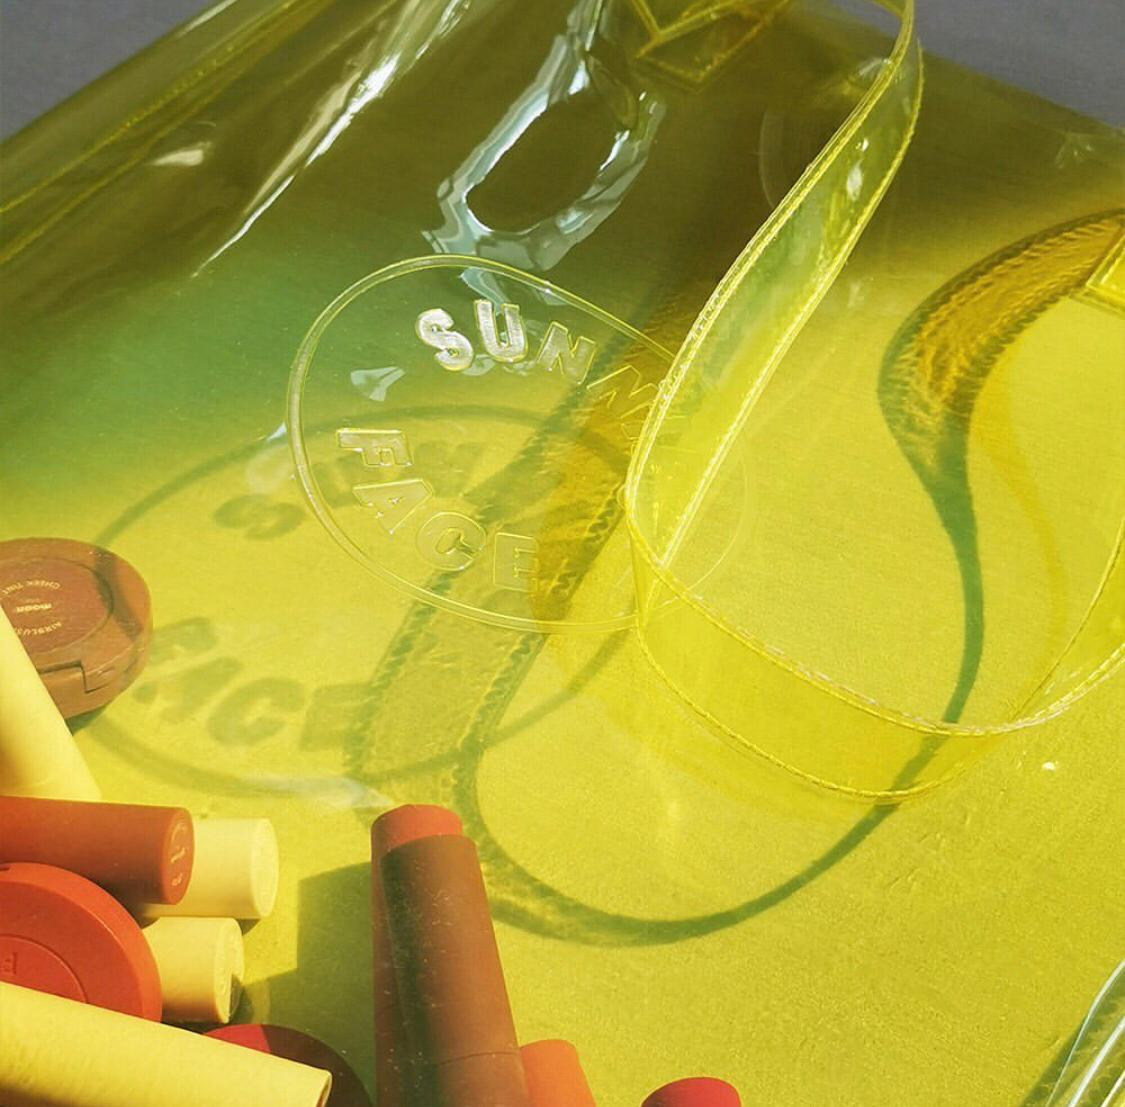 Sunnies Face Limited Edition Jelly Tote in Citron Closeup 2